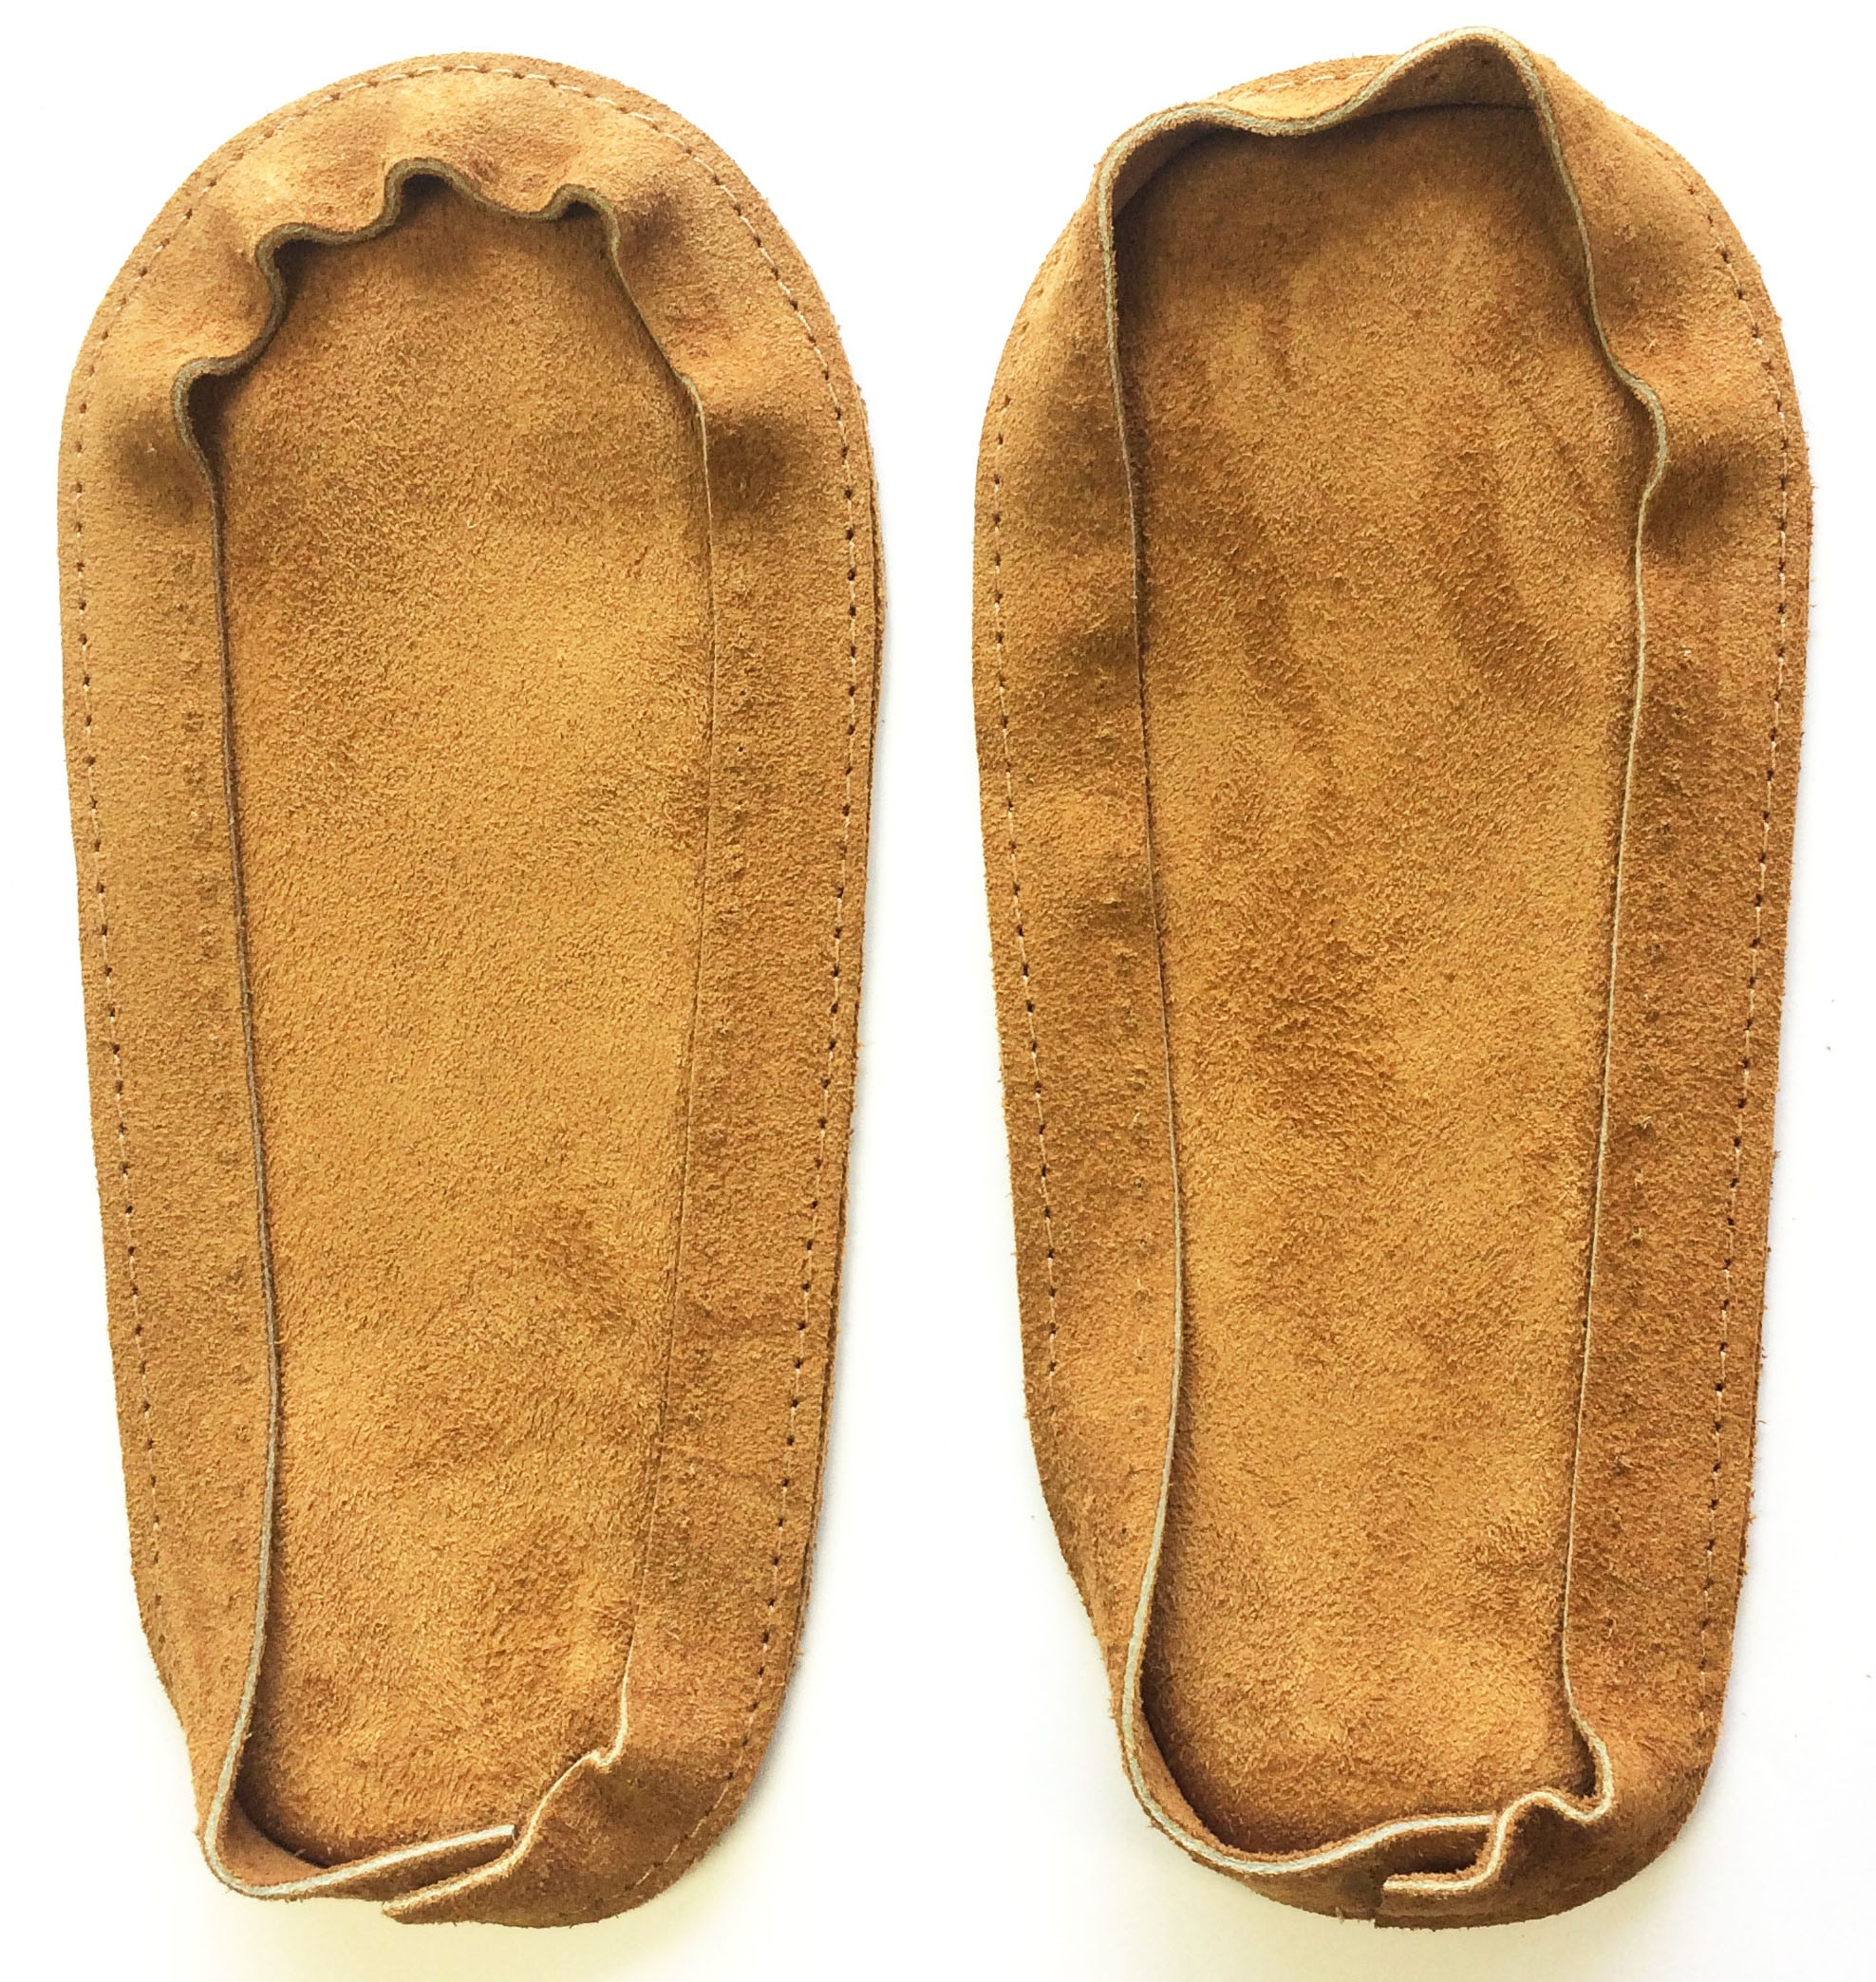 Soul Comfort - Leather Slipper Soles, Youth Size 2, Tan (ON SALE - 25% OFF!)